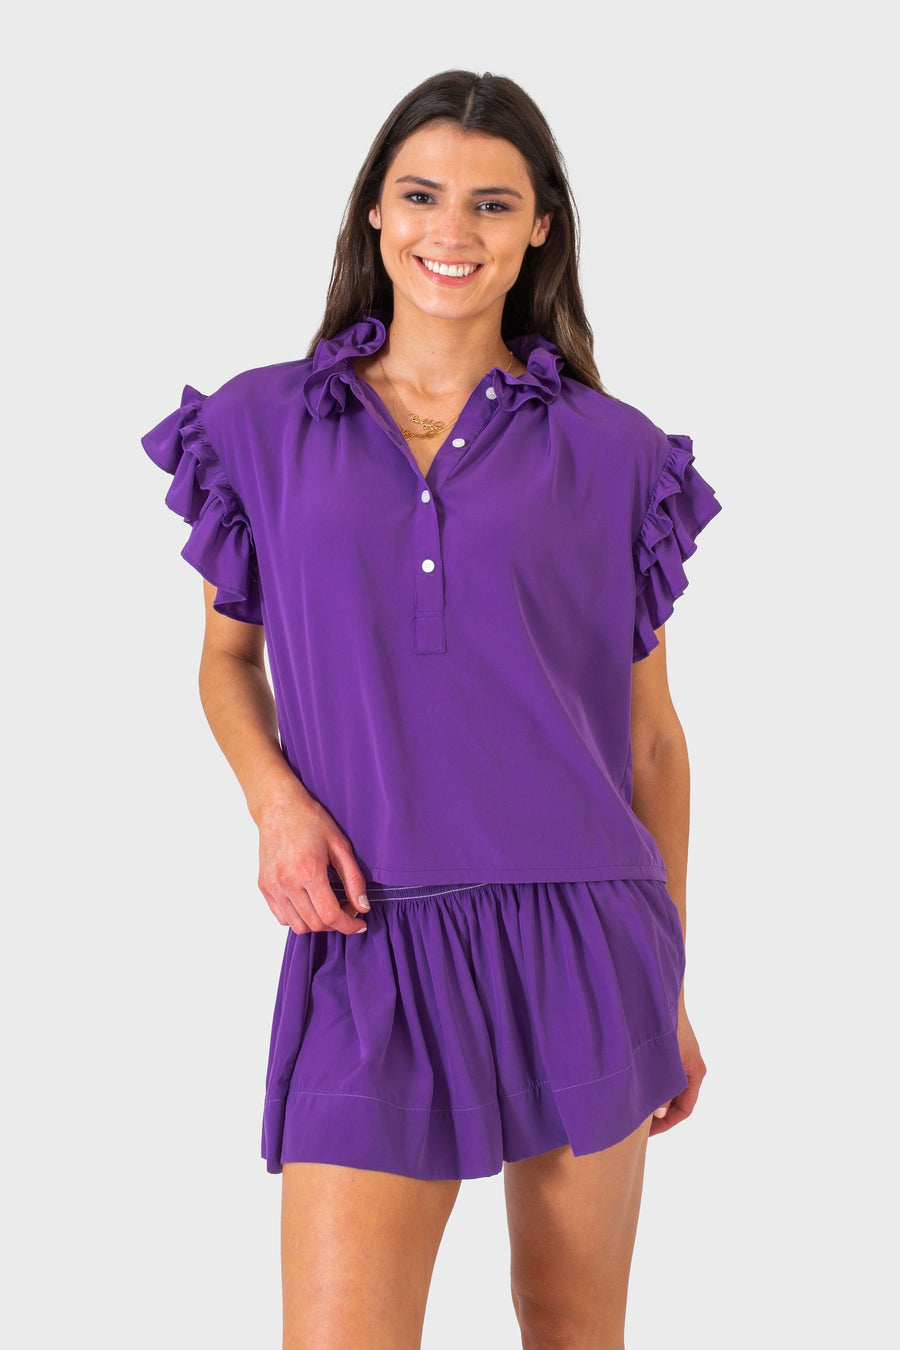 PIXIE TOP PURPLE *LIMITED*EDITION*